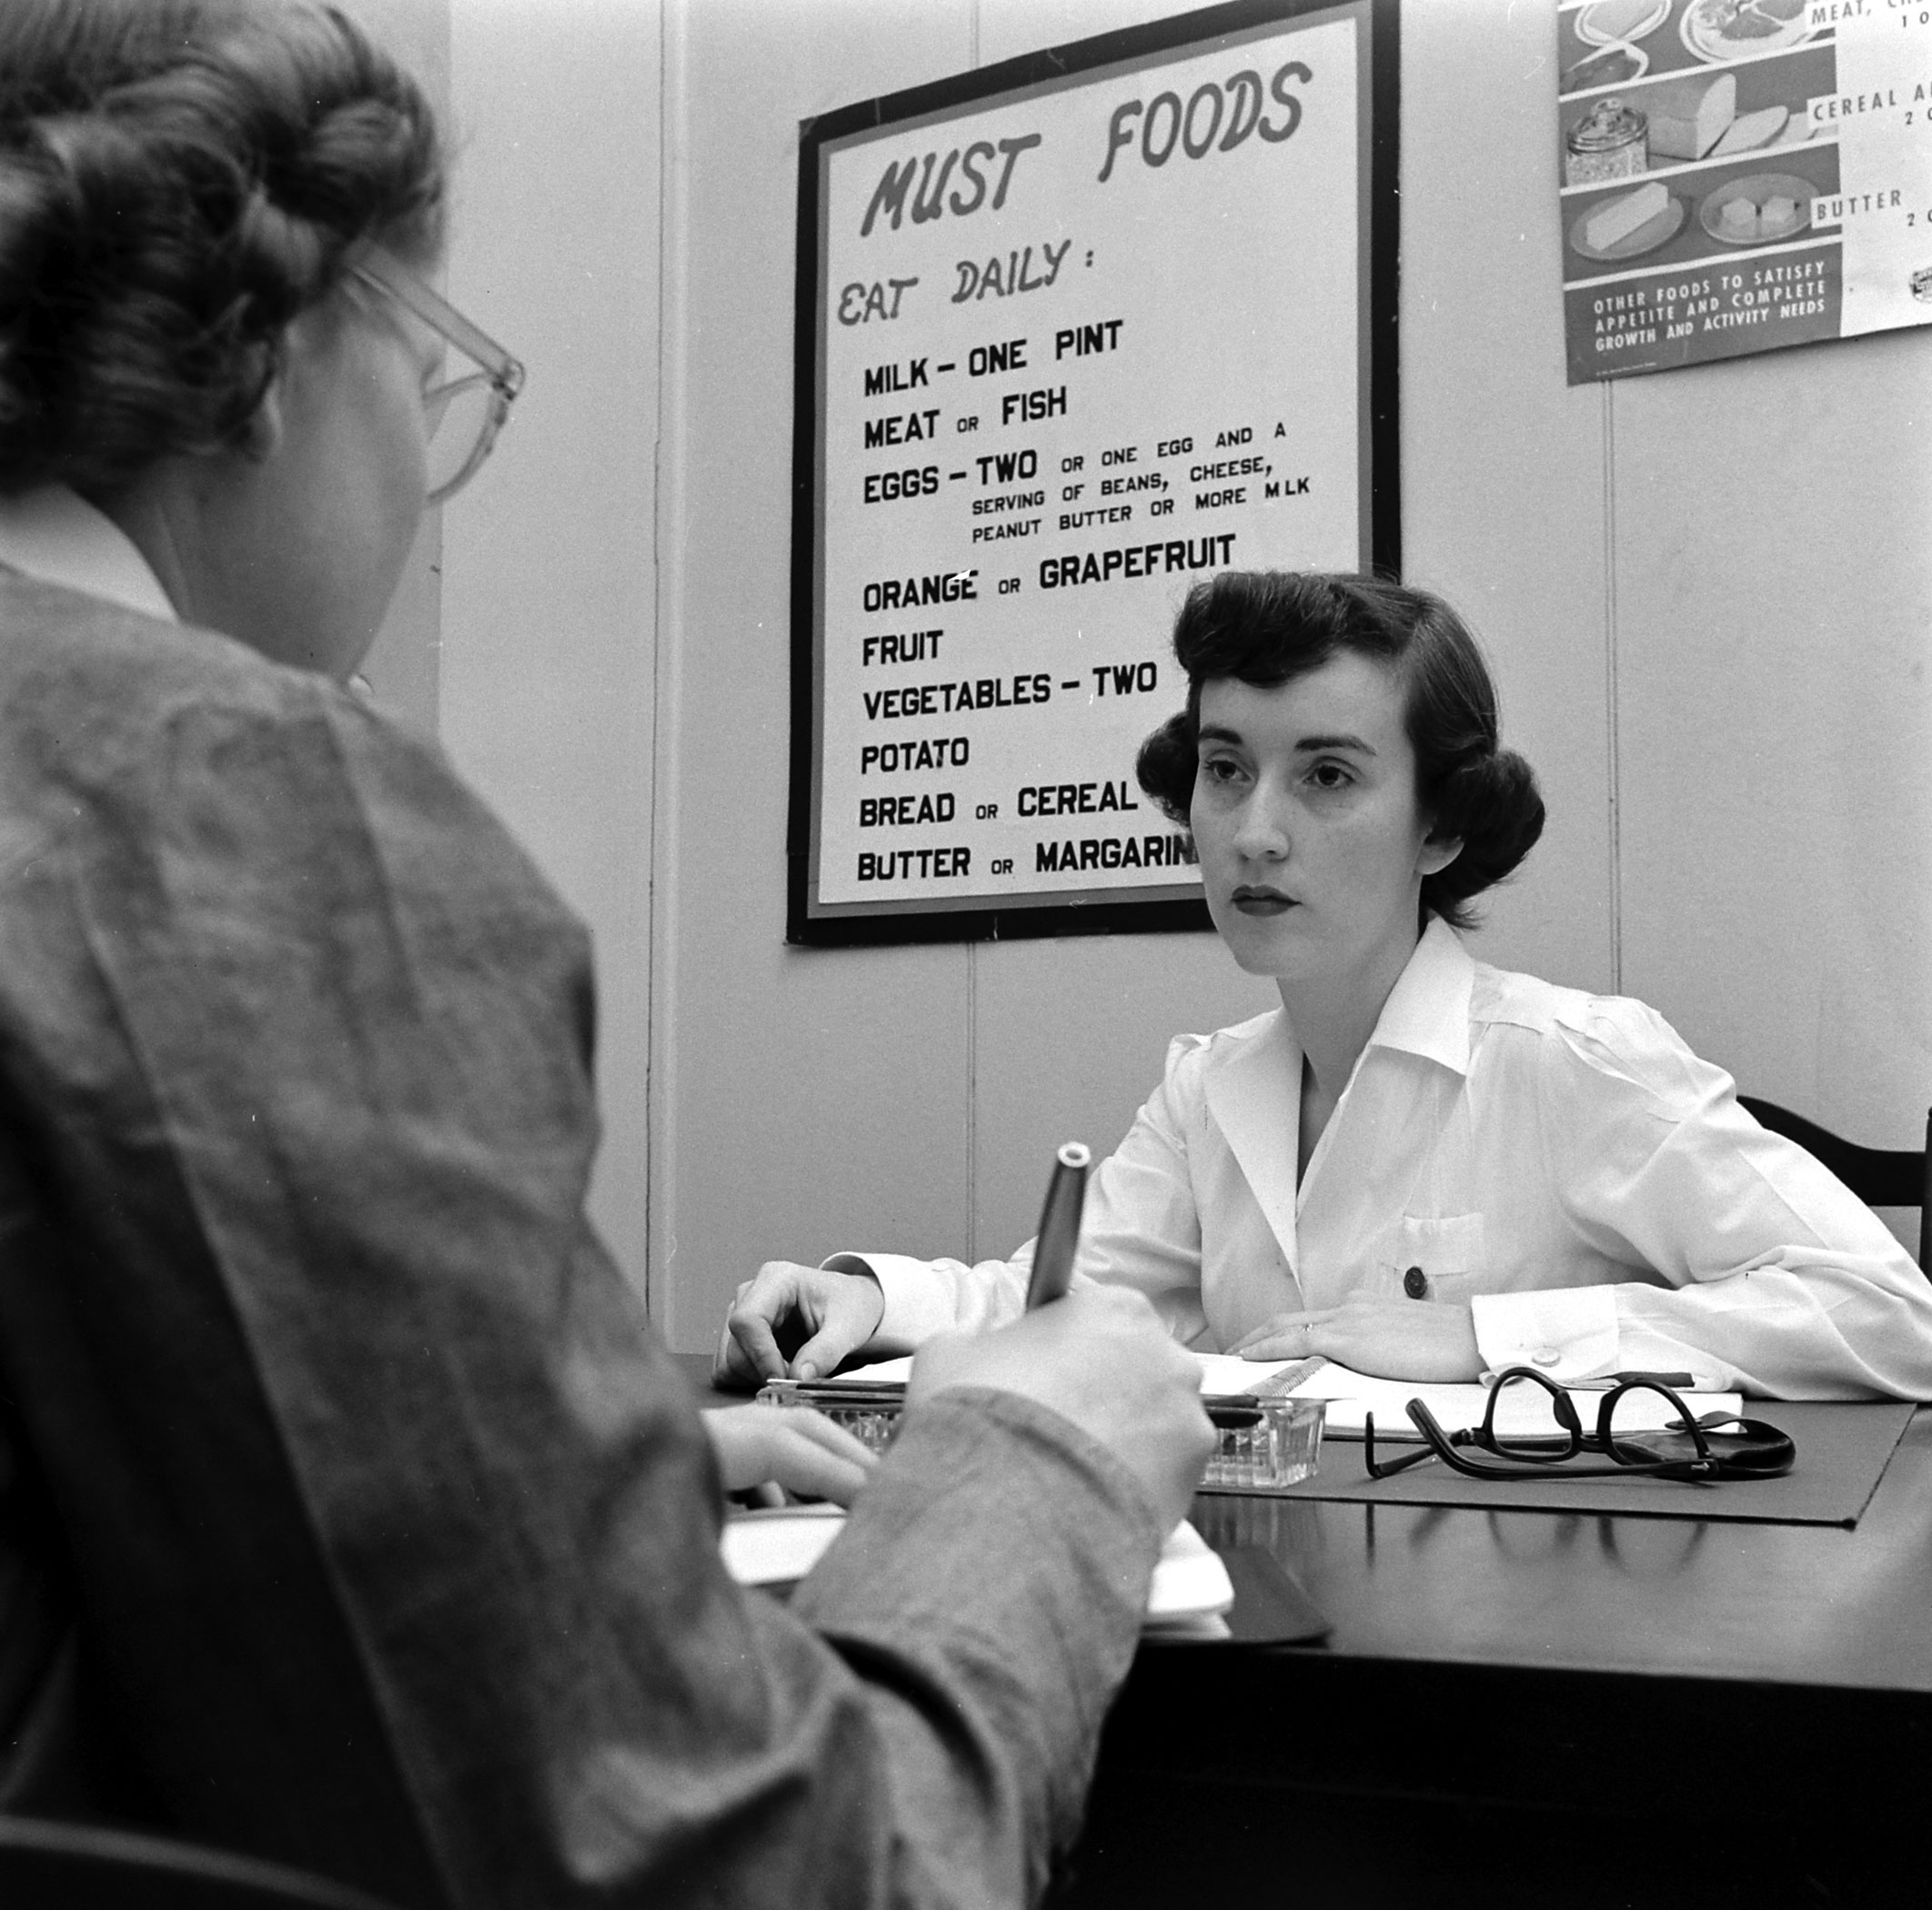 Dorothy Bradley (left), photographed for LIFE magazine article on obesity, meets with a nutritionist, 1949.